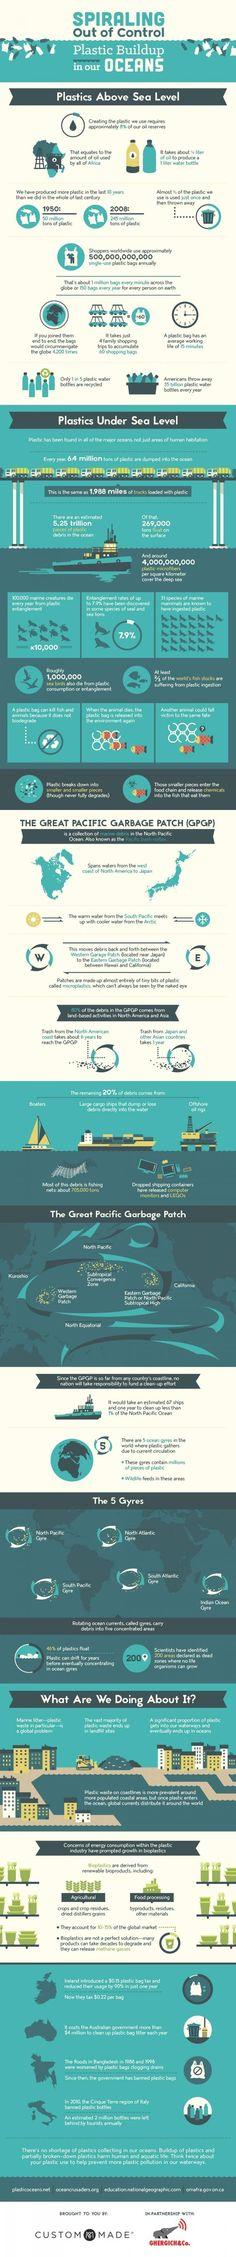 plastic buildup in oceans infographic